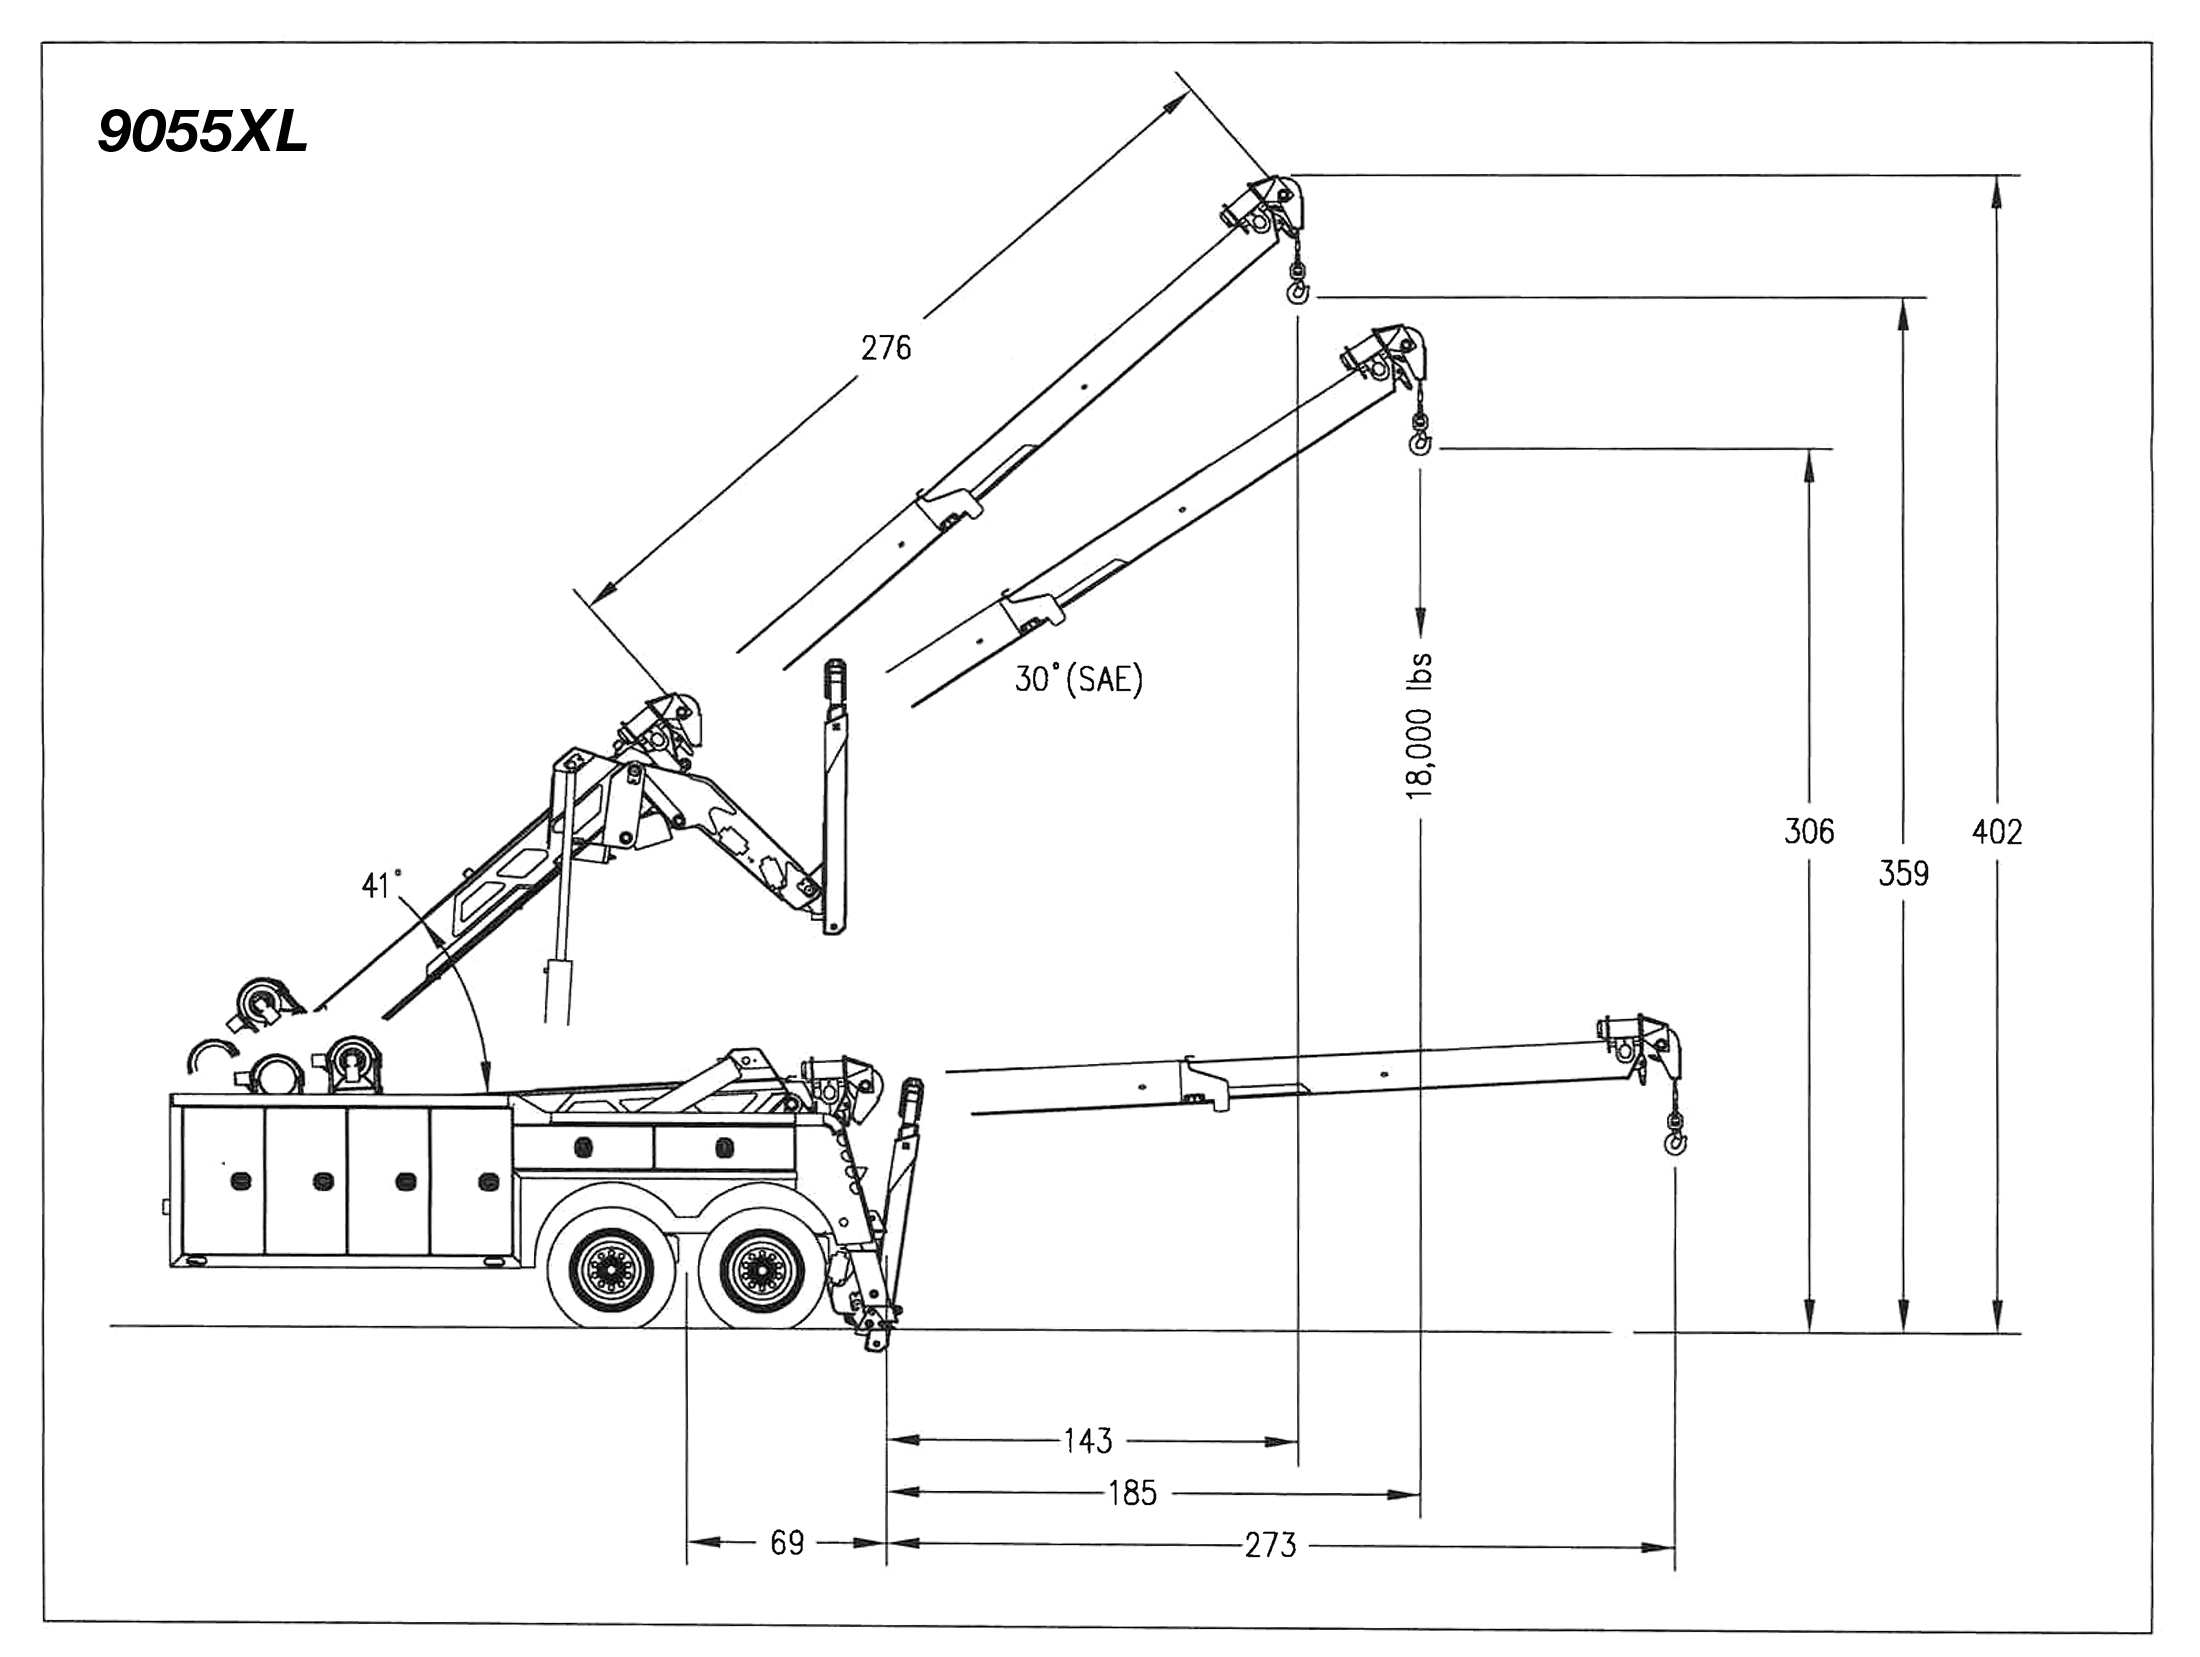 Century Century 9055XL Diagram